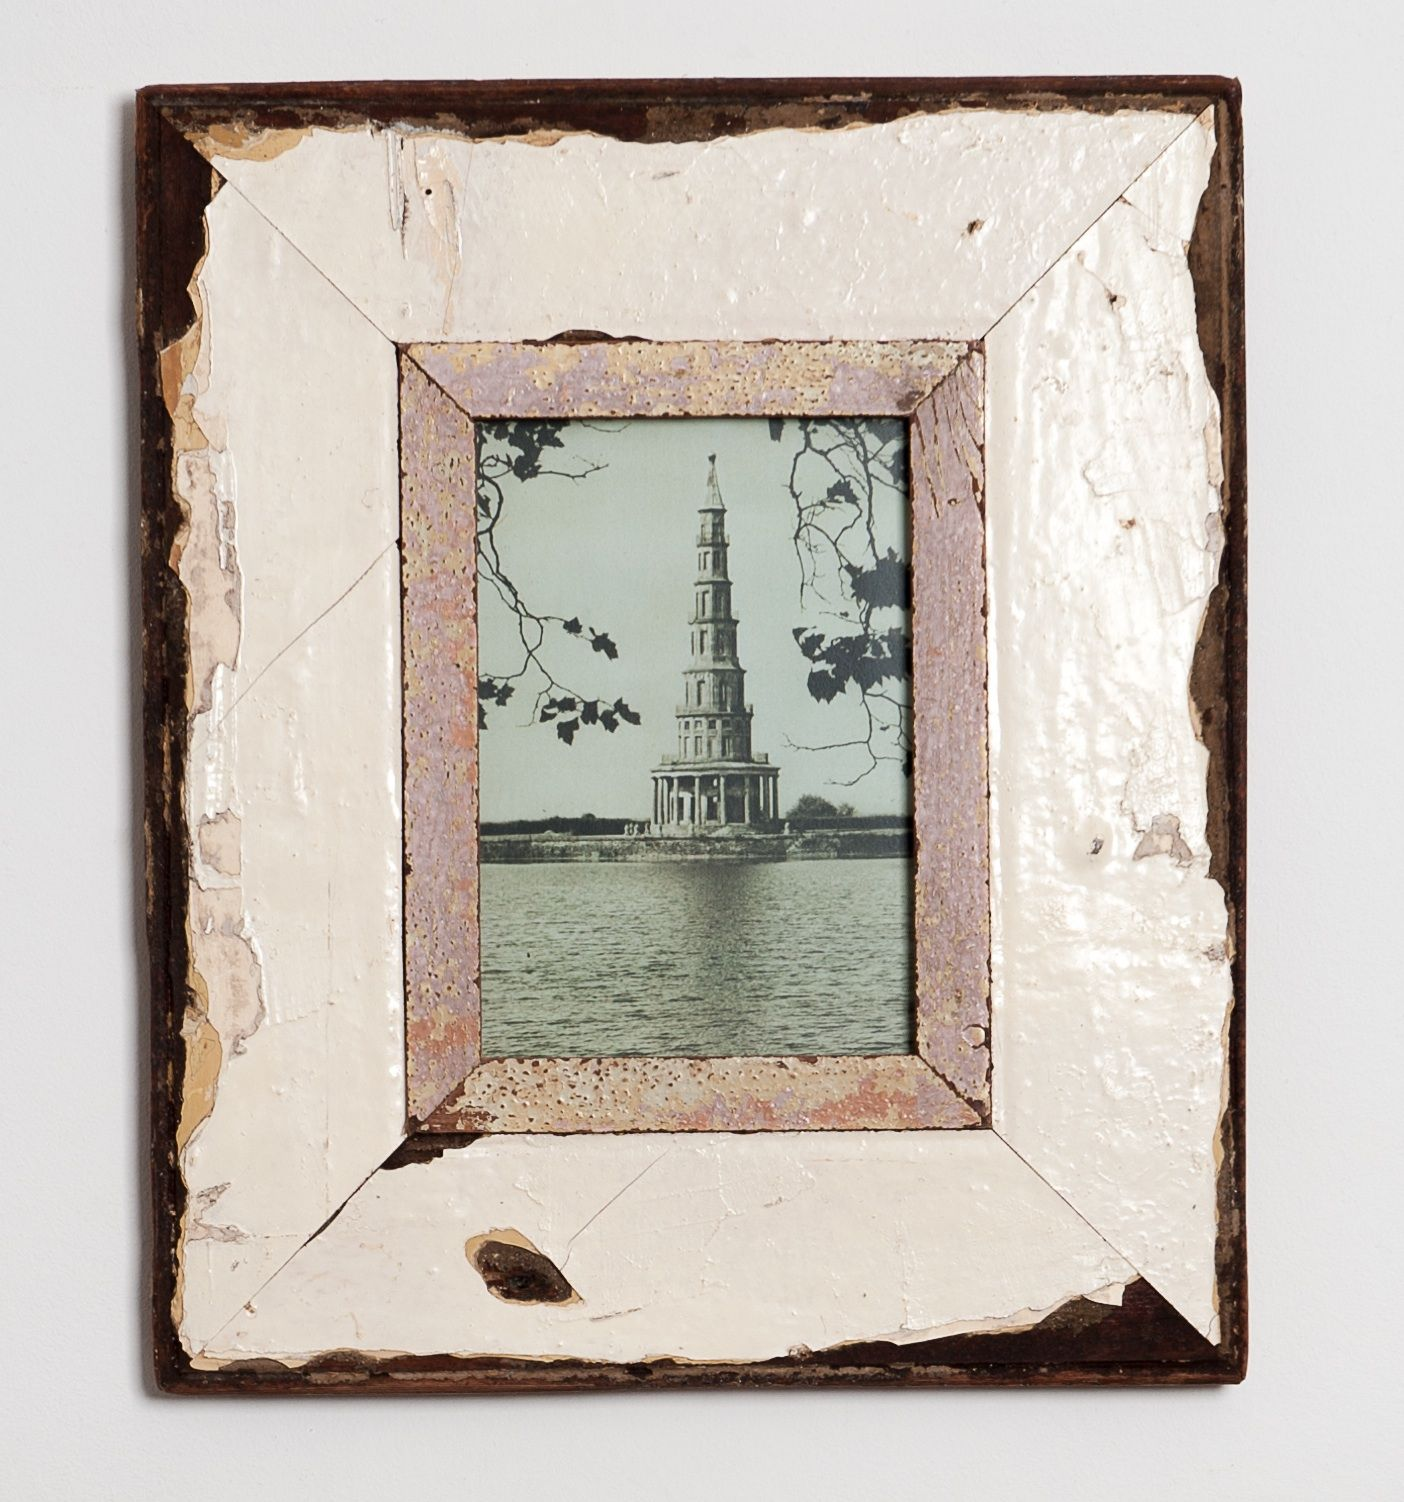 distressed wooden frame handmade in cape town south africa